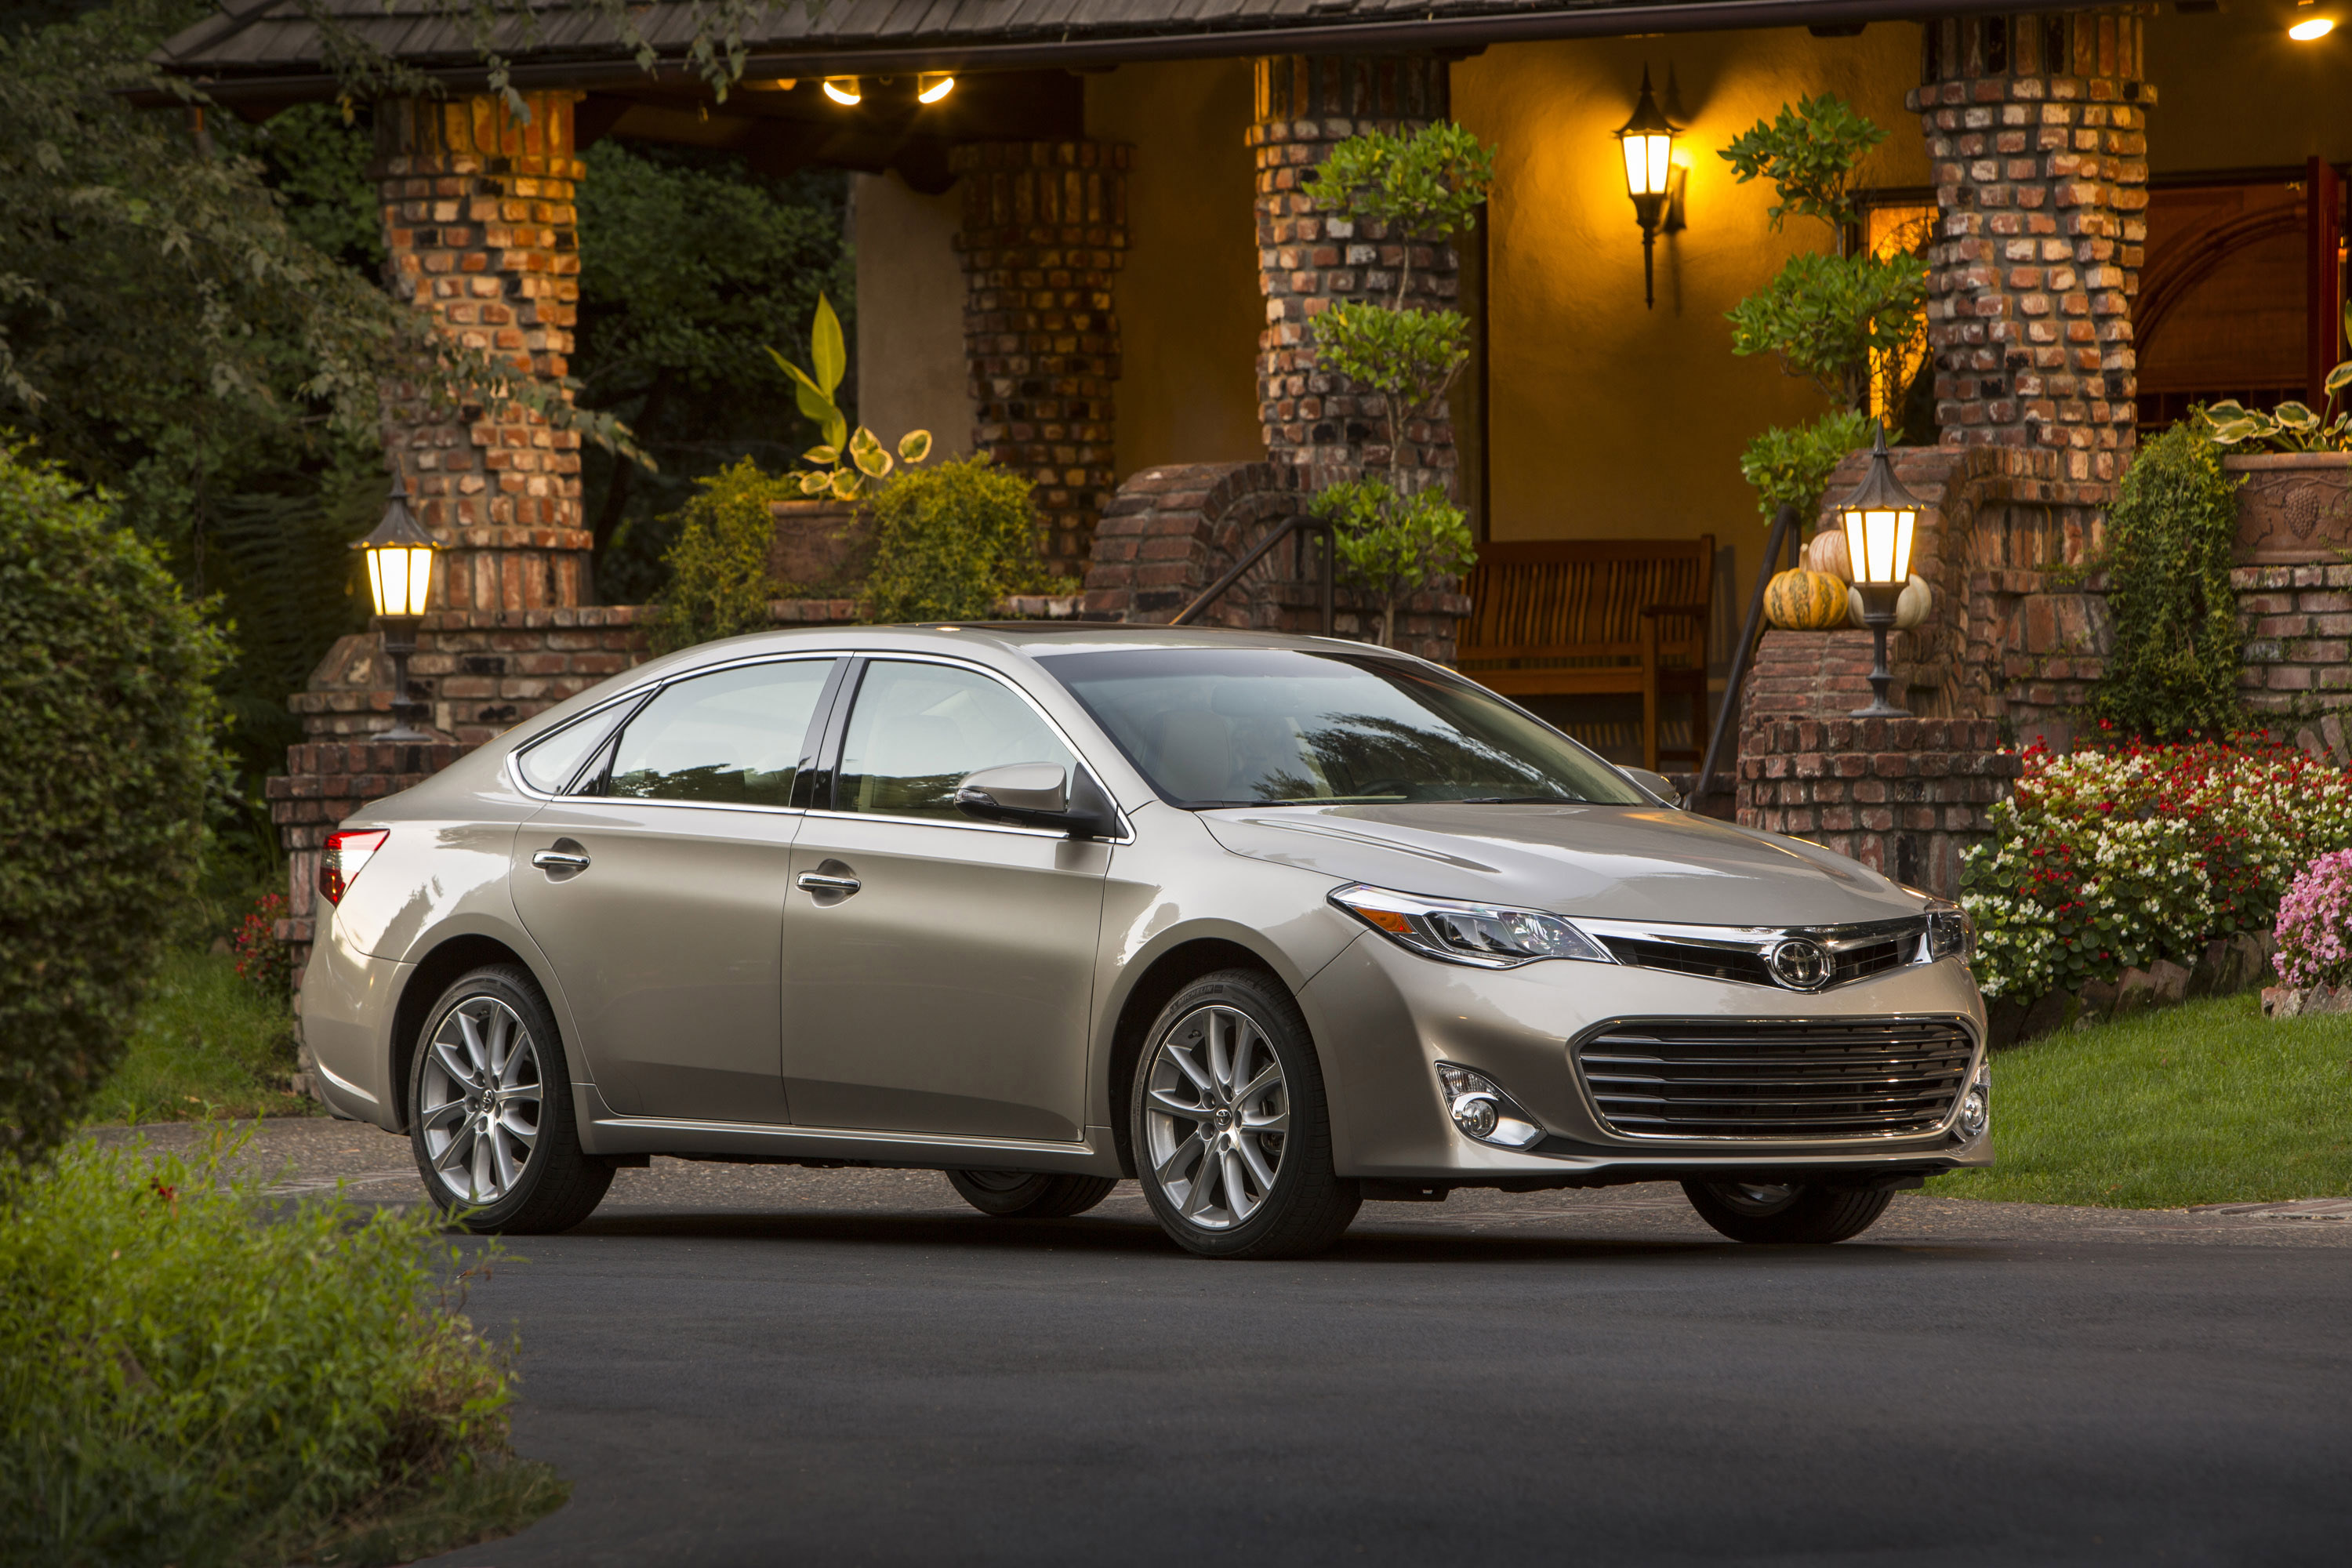 toyota avalon review bleakney test peter expert drive limited